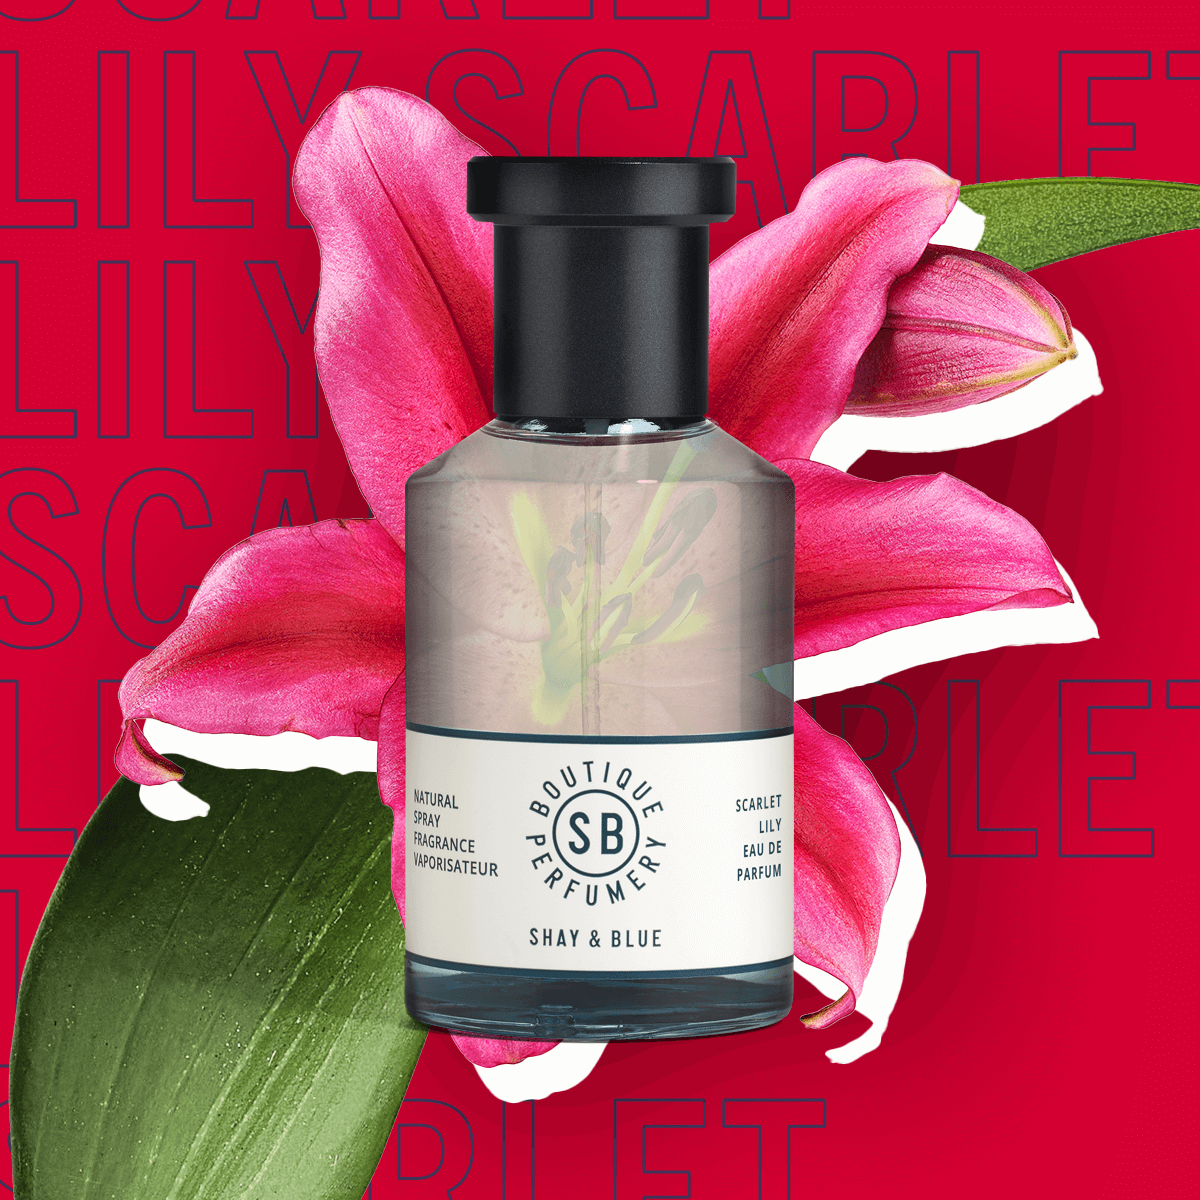 Scarlet Lily Fragrance 100ml | Big Blooms of Scarlet lily with undertones of ylang ylang. | Clean All Gender Fragrance | Shay & Blue